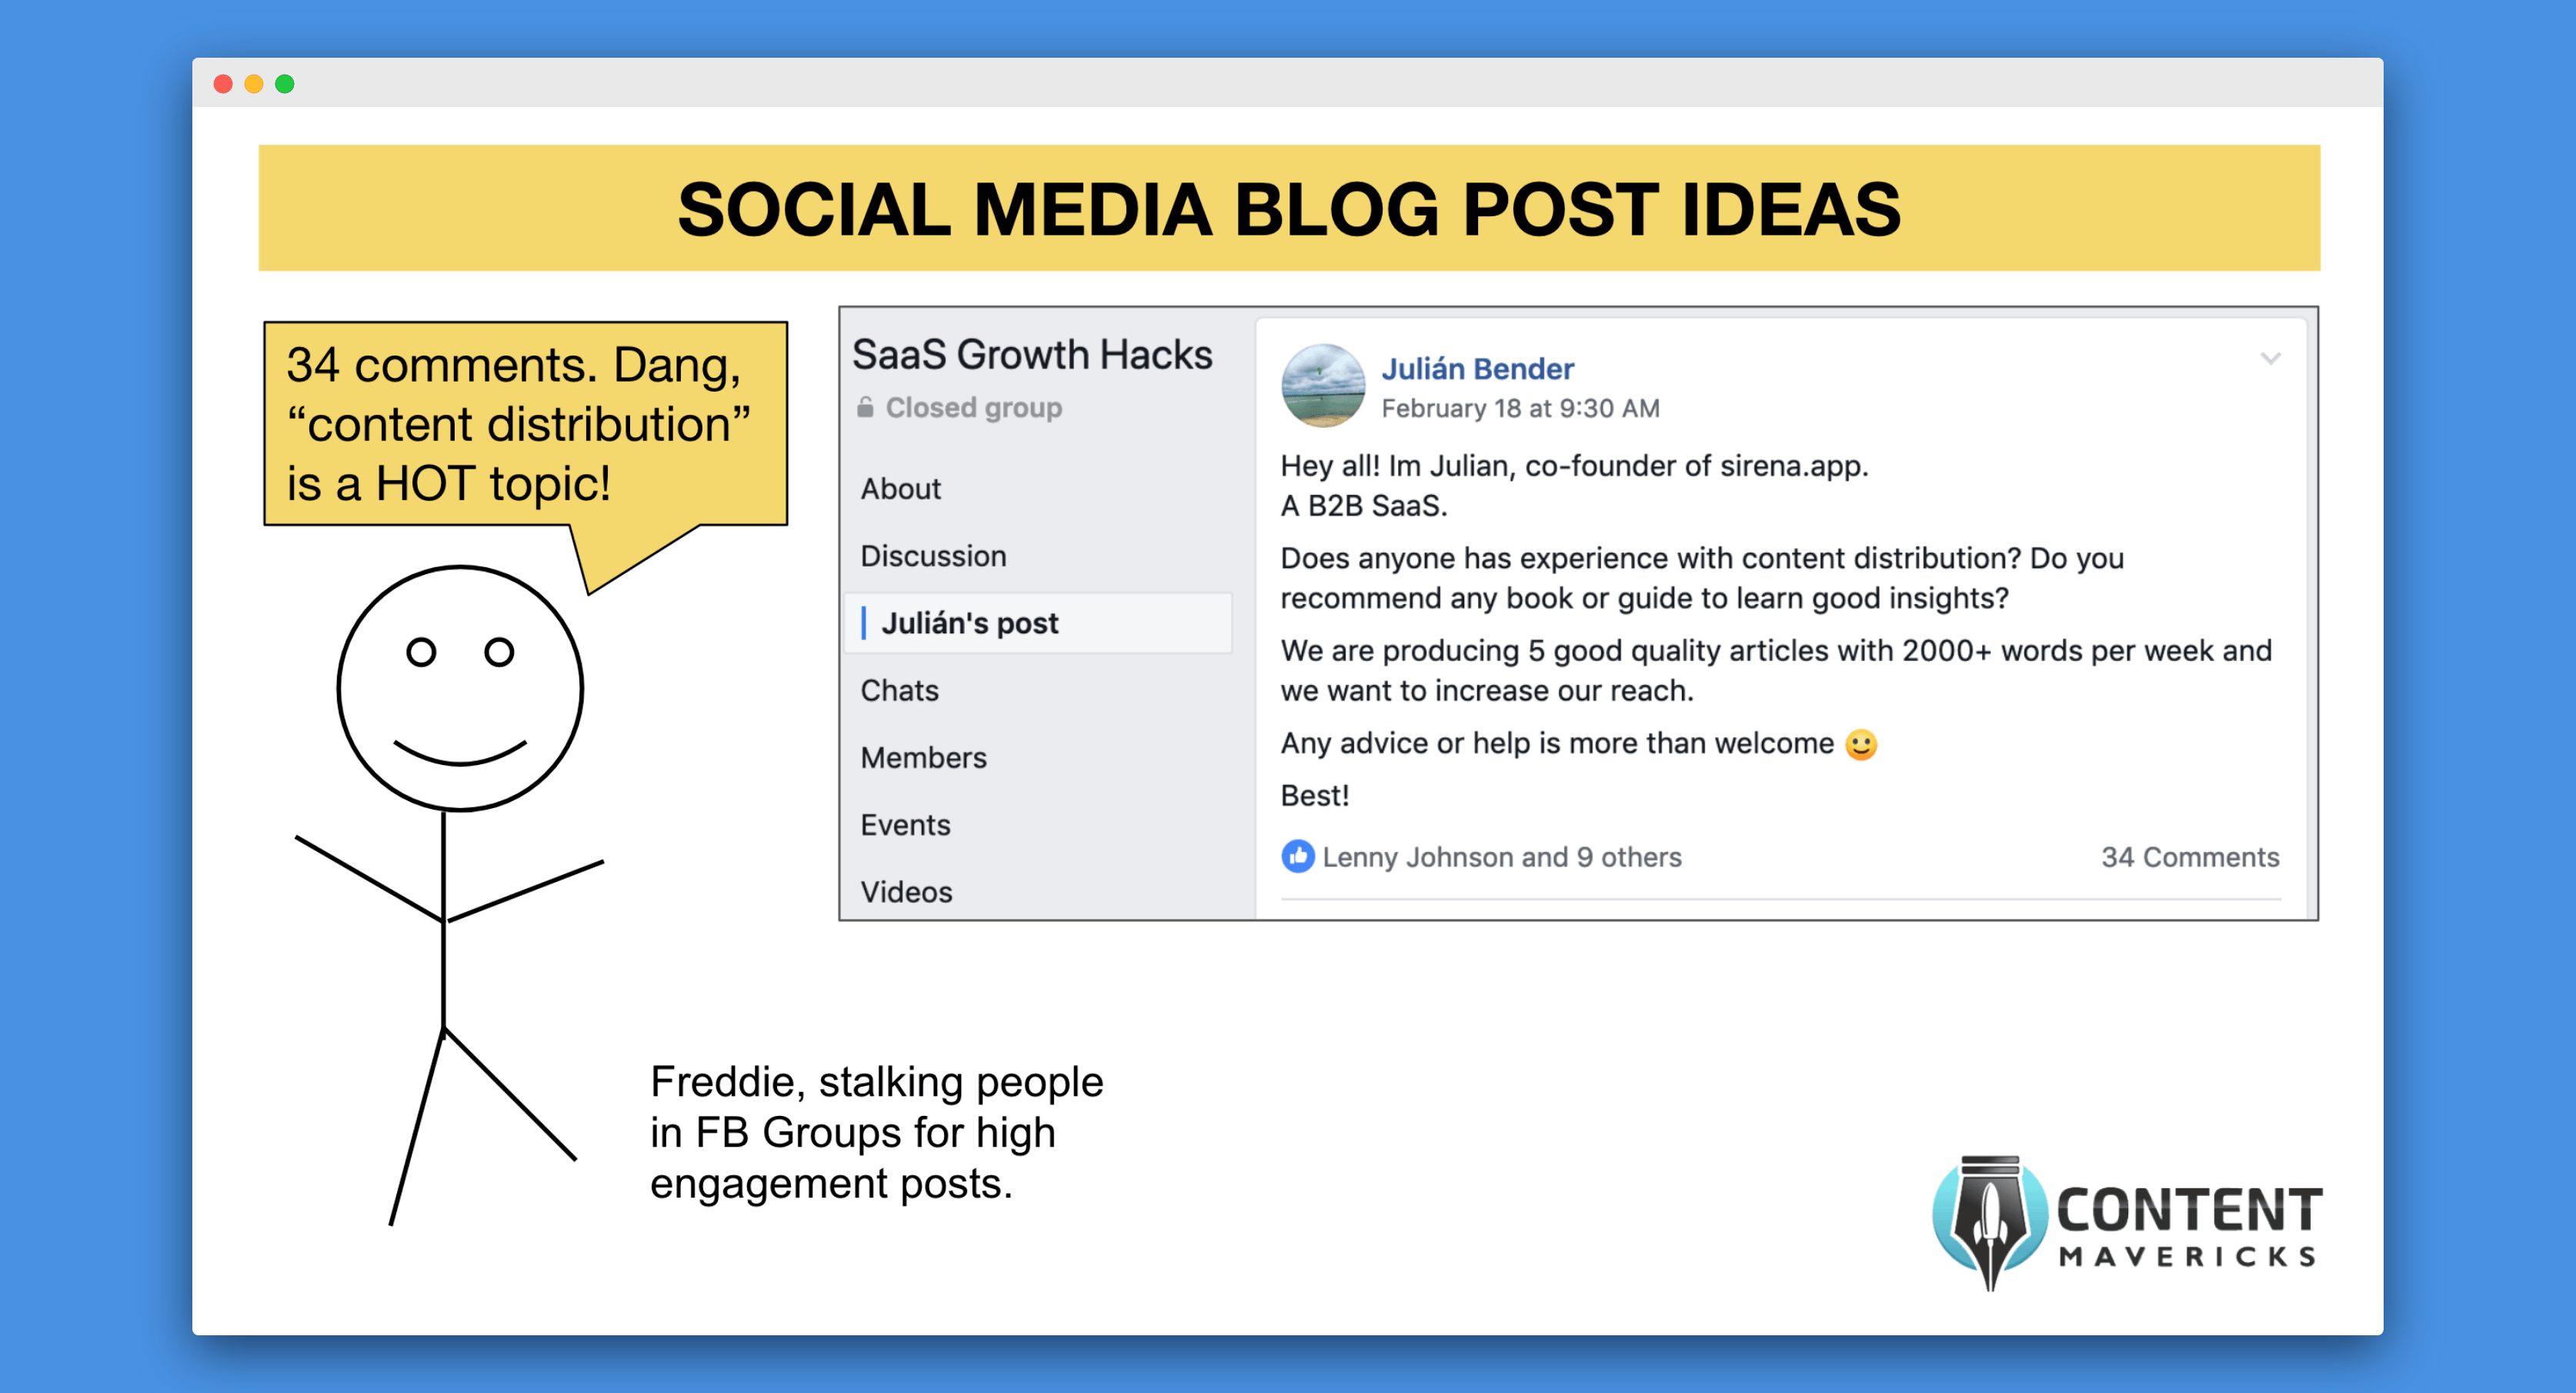 social media blog post ideas image